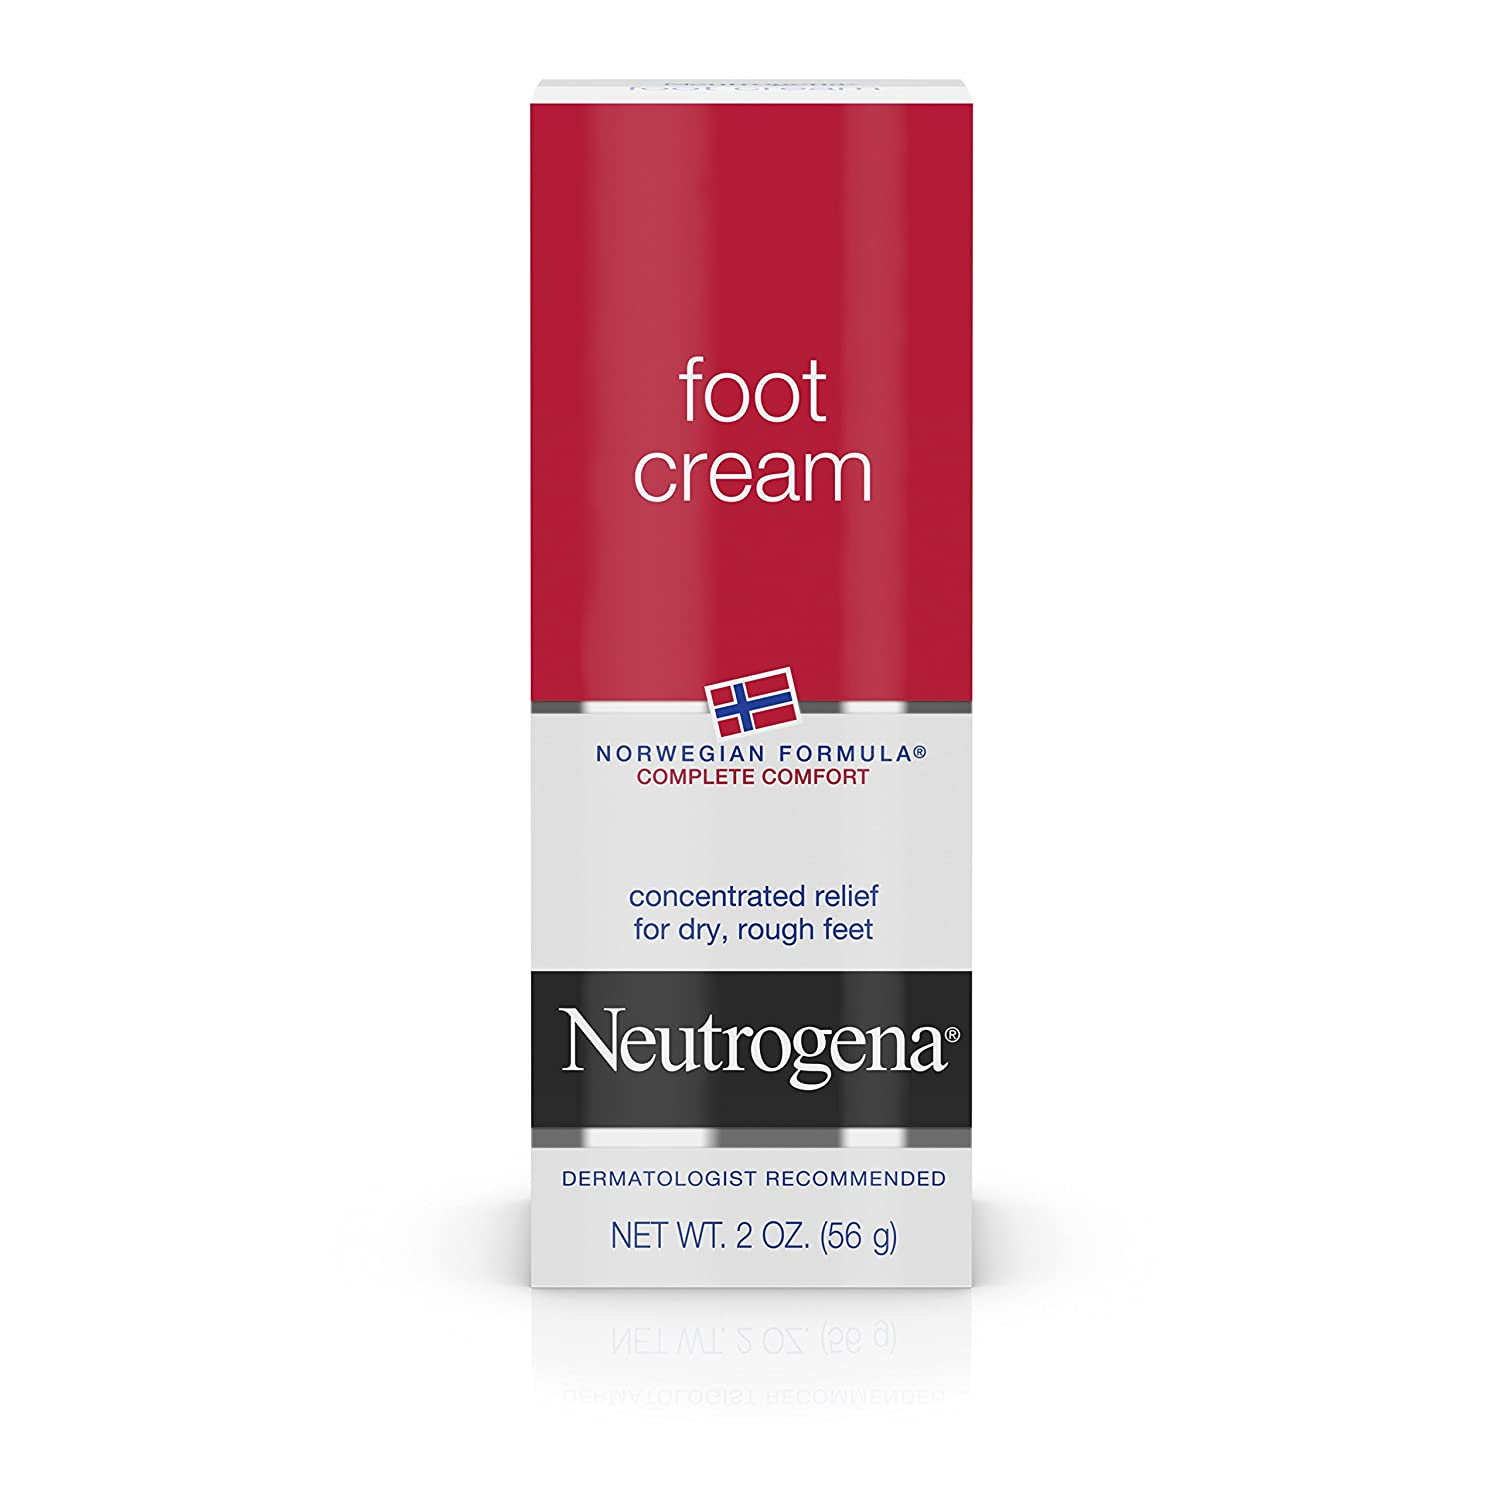 Neutrogena Norwegian Formula Foot Cream for Dry Rough Feet, 2 Ounce (Pack of 4) J&J CONSUMER INC 070501240007